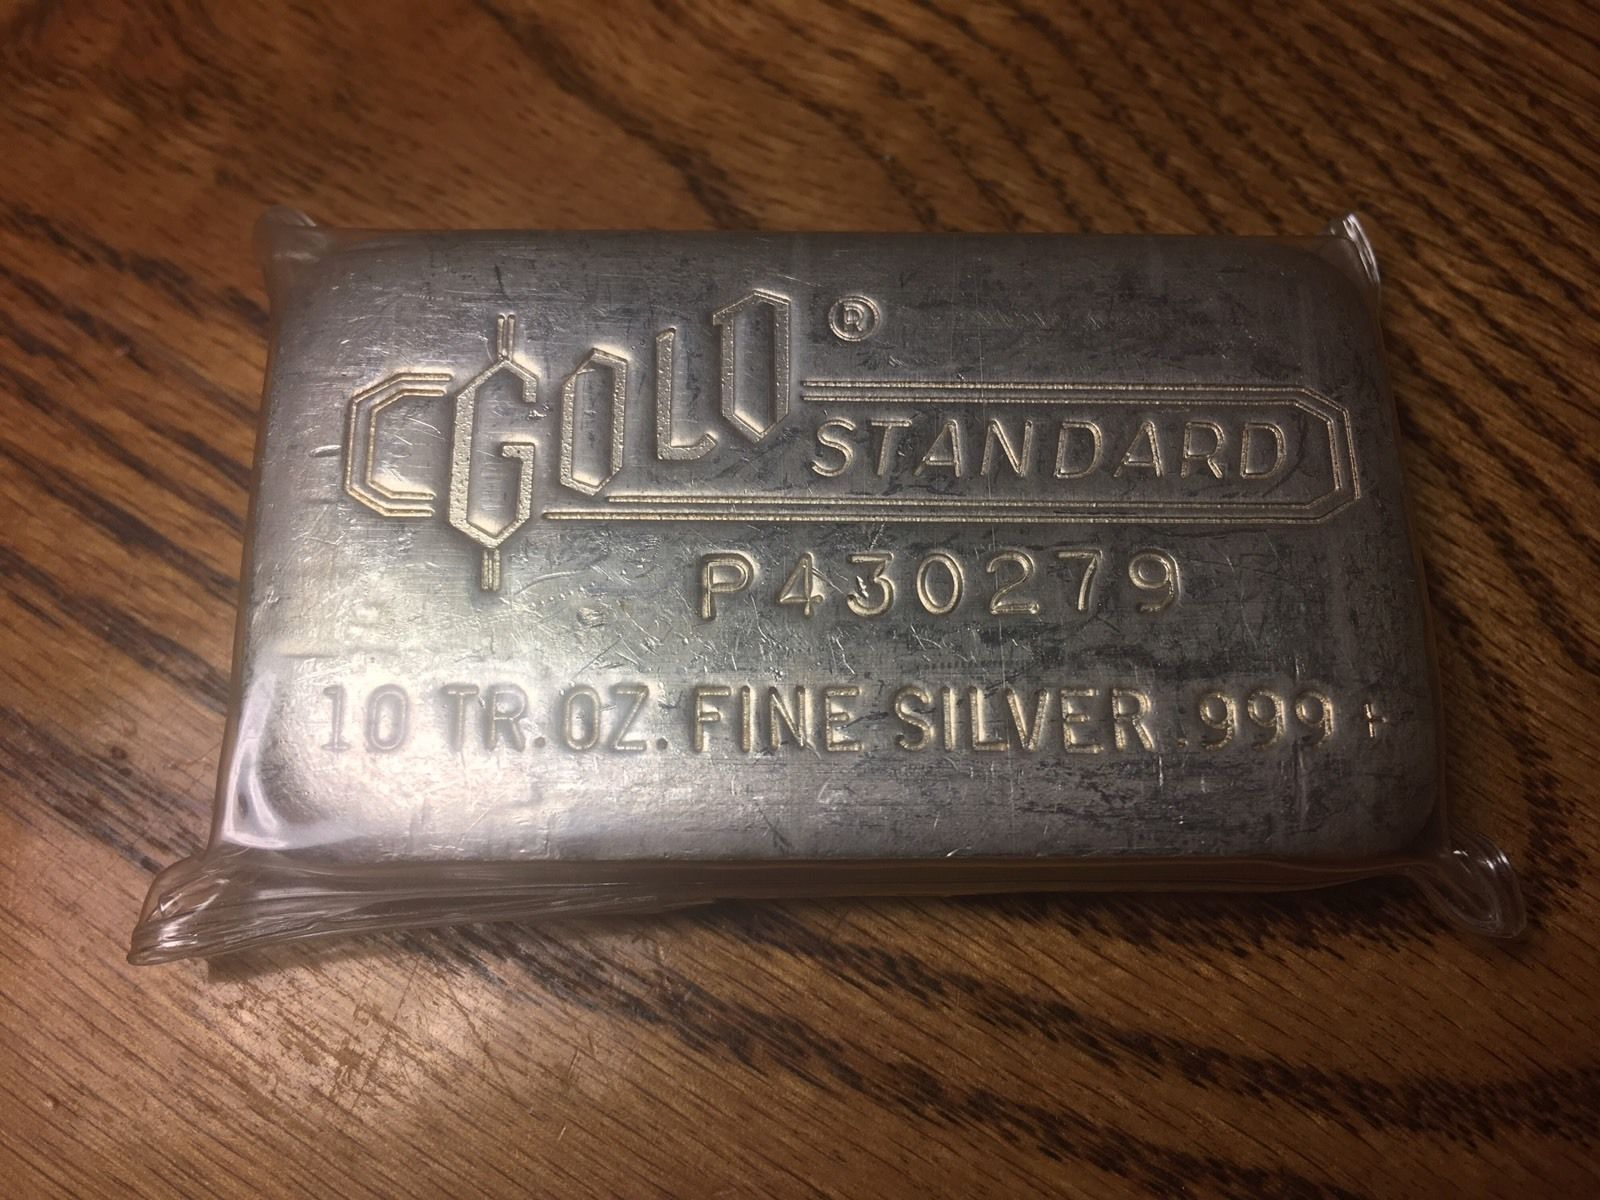 Engelhard 10 Troy Oz 999 Silver Poured Bar Gold Standard Seldom Seen For Sale Silver Branded Mints Gold